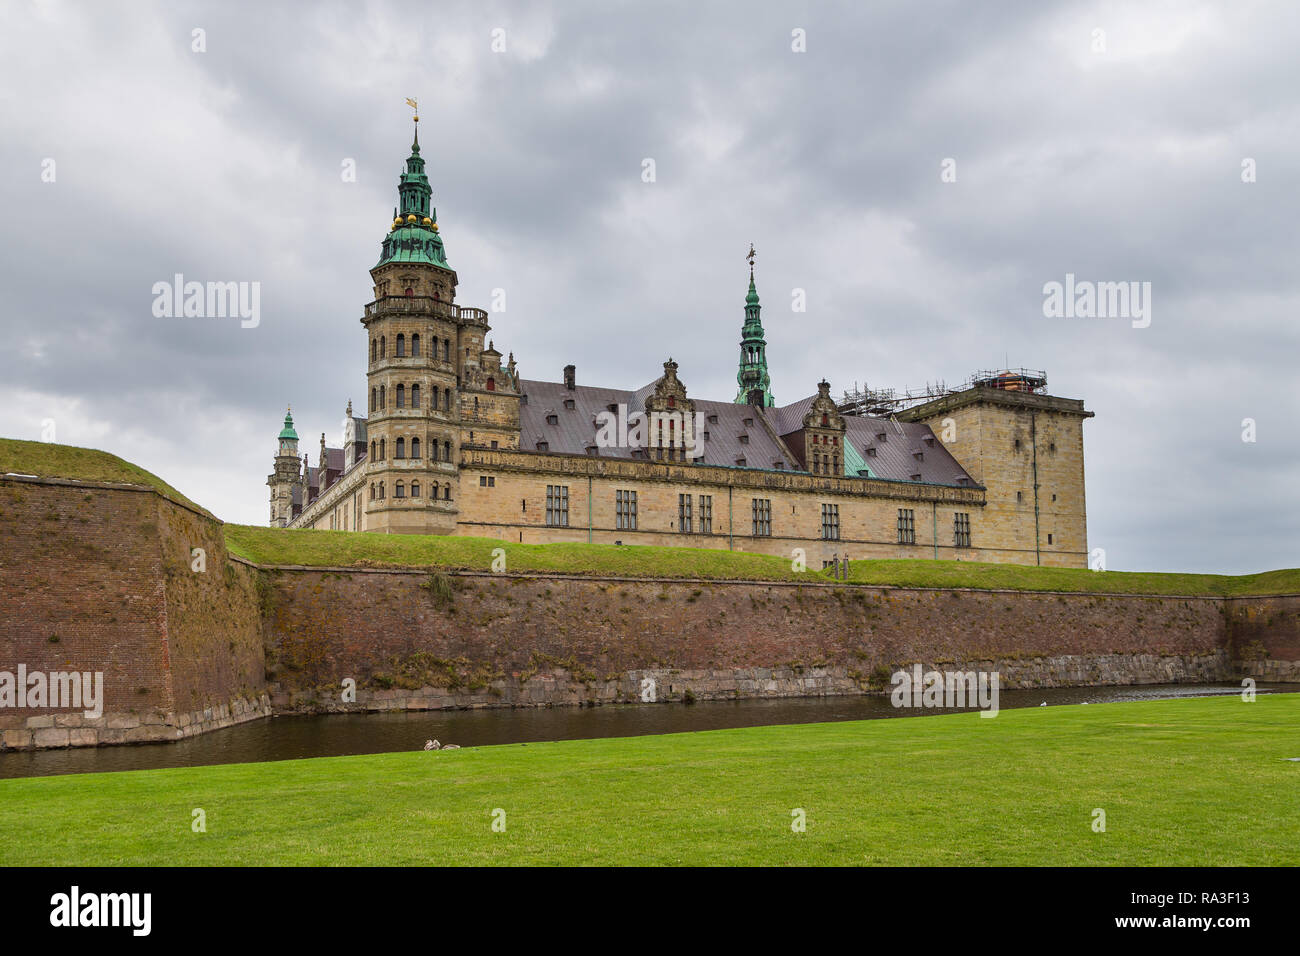 Helsingor, Denmark- 30 August 2014: View of Kronborg palace and defensive walls. Kronborg Palace, most important Renaissance palace in Northern Europe - Stock Image